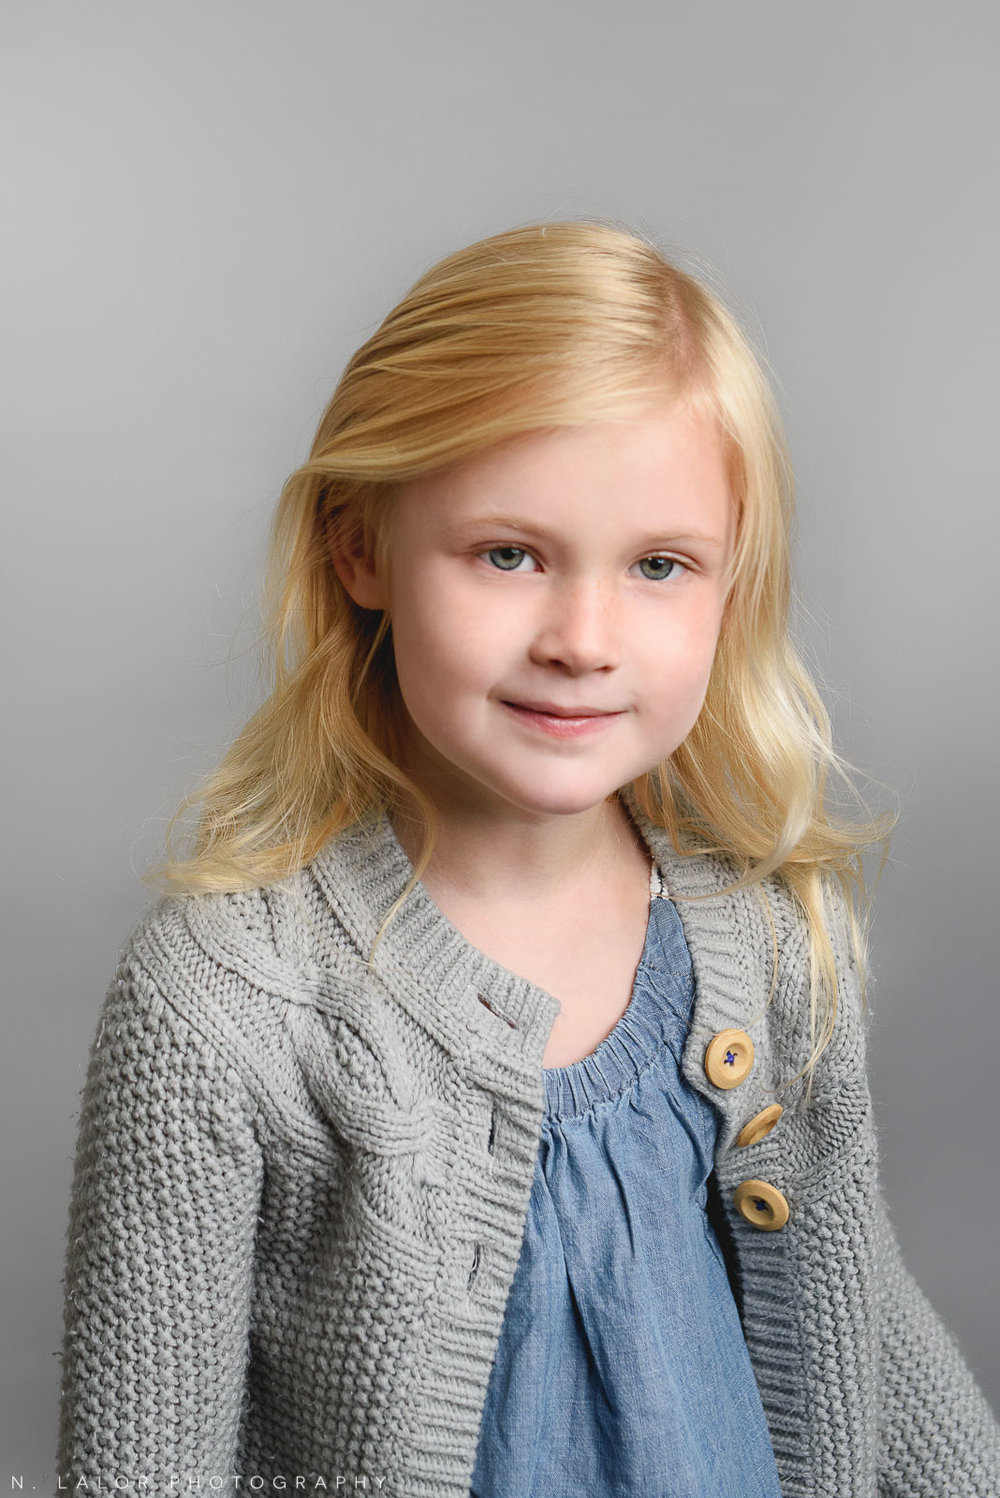 Older sister. Simple studio portrait by N. Lalor Photography. Taken in New Canaan, CT.